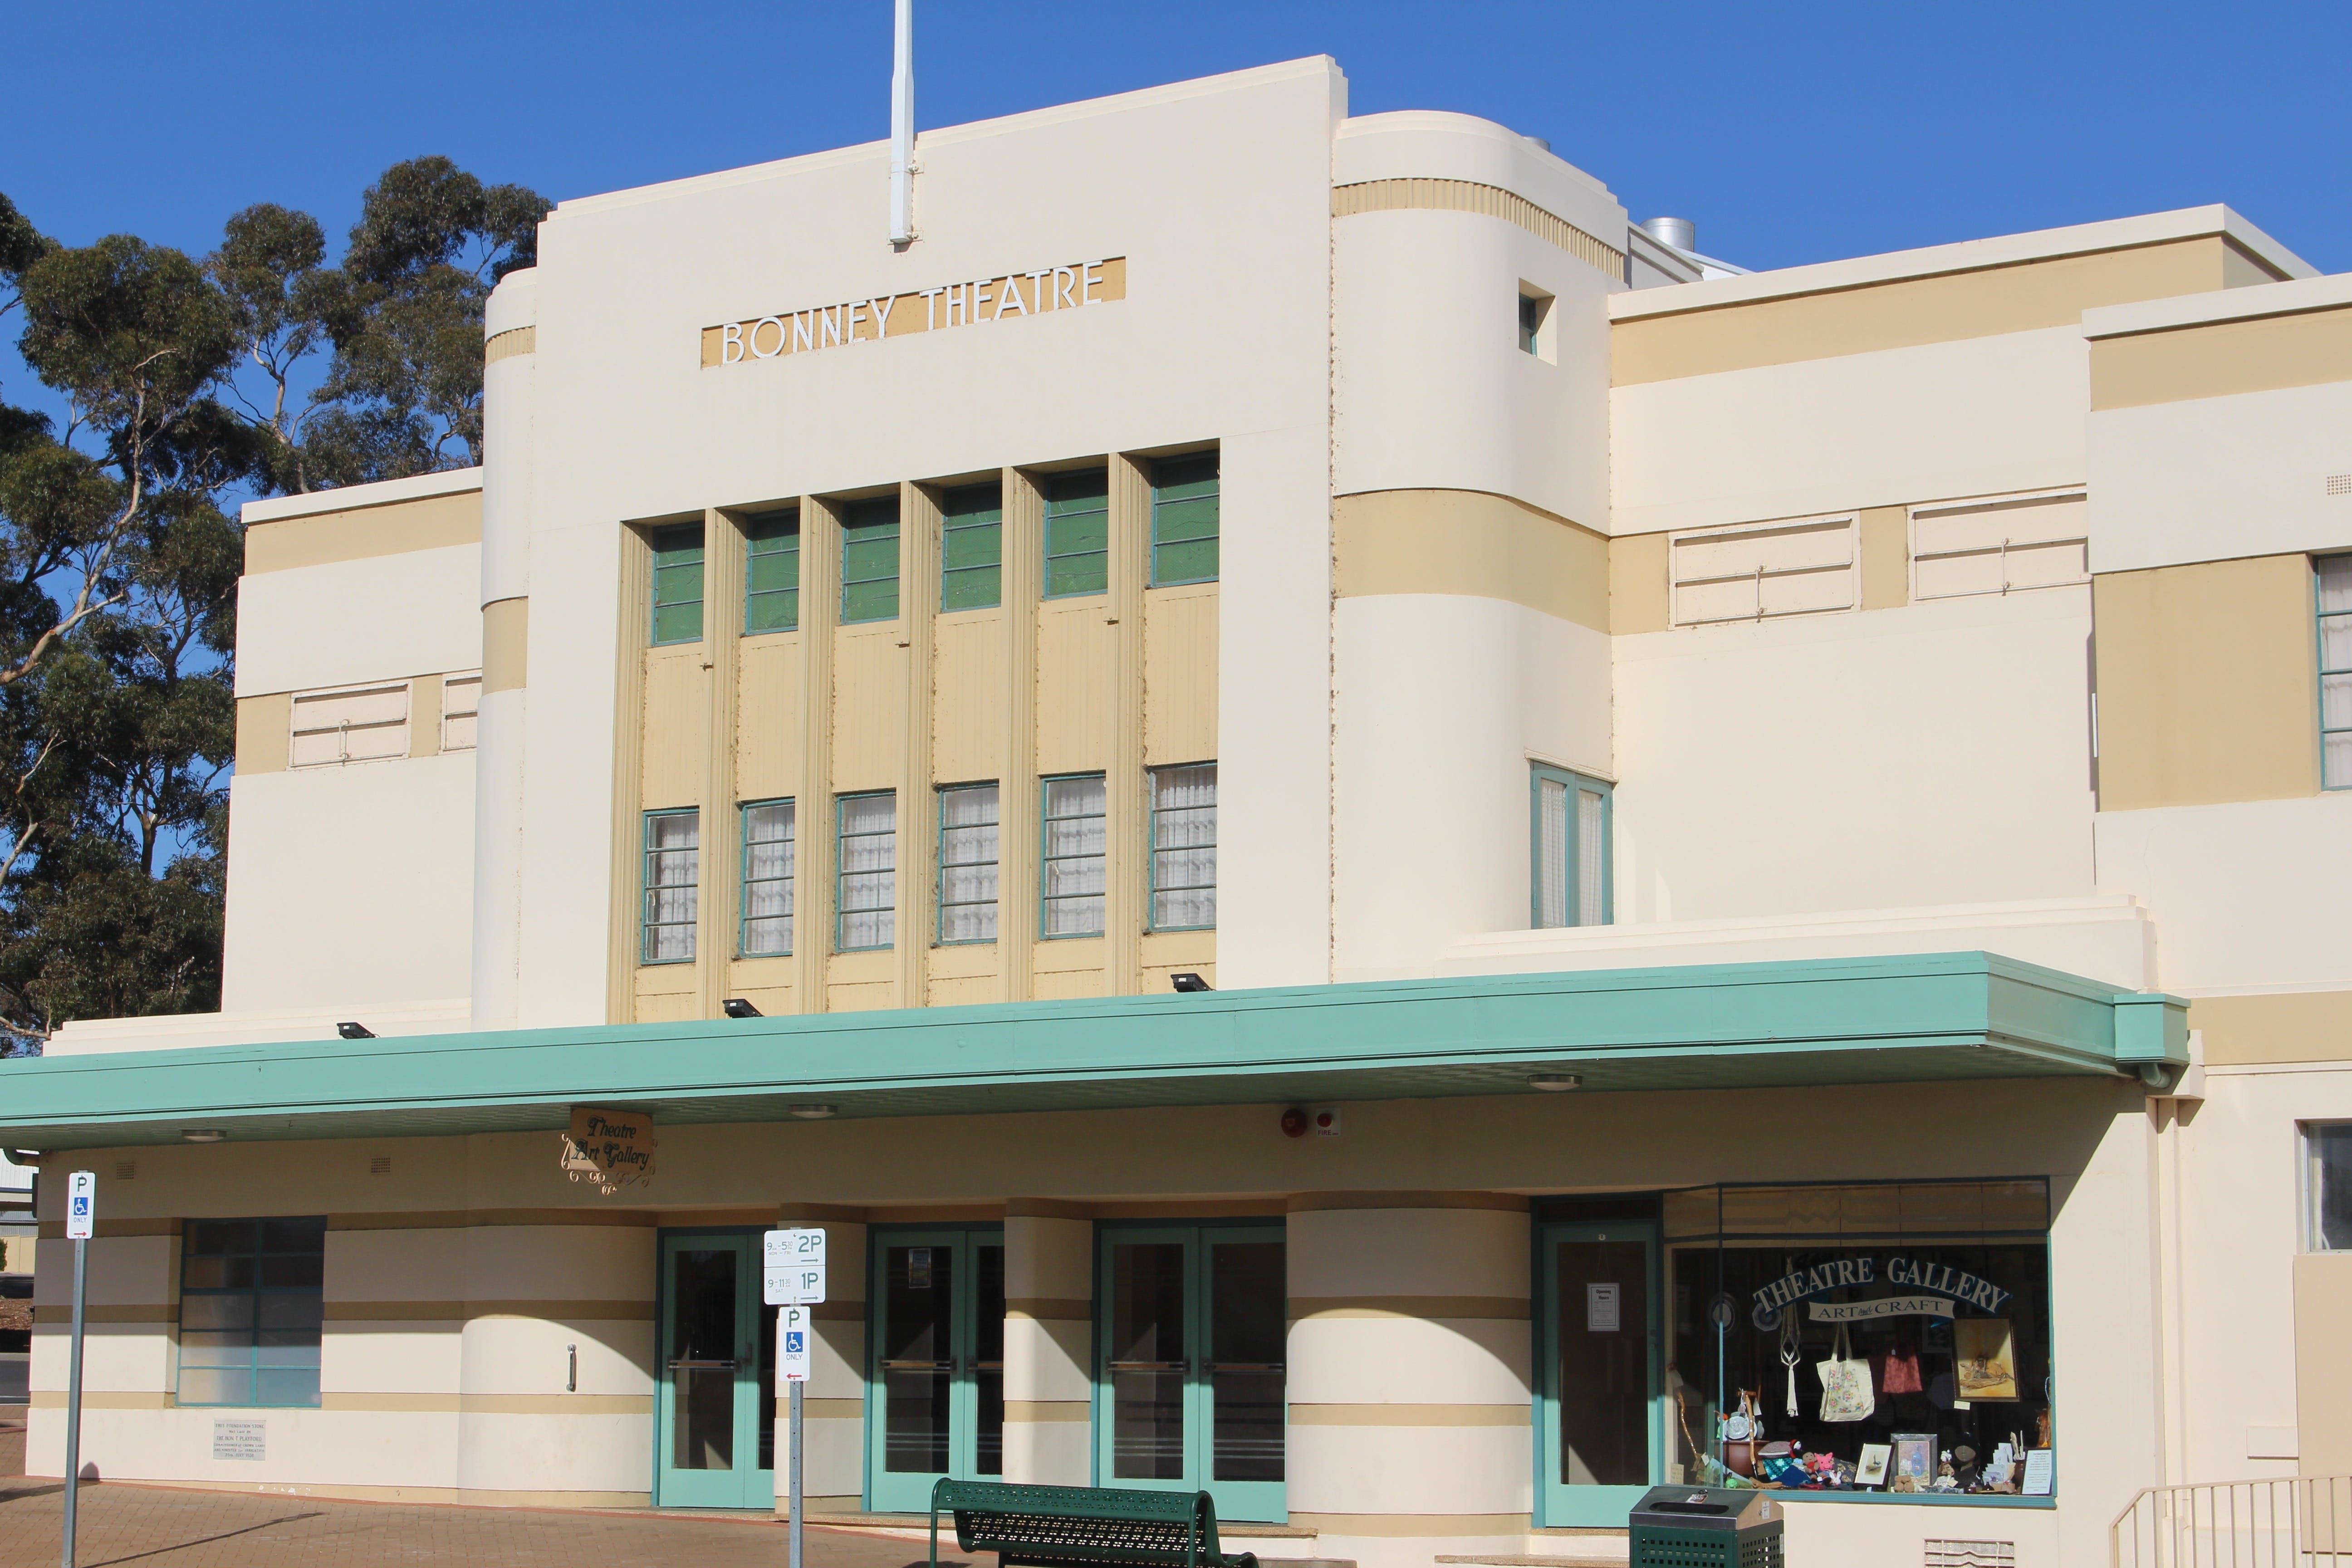 Bonney Theatre - Accommodation Broome